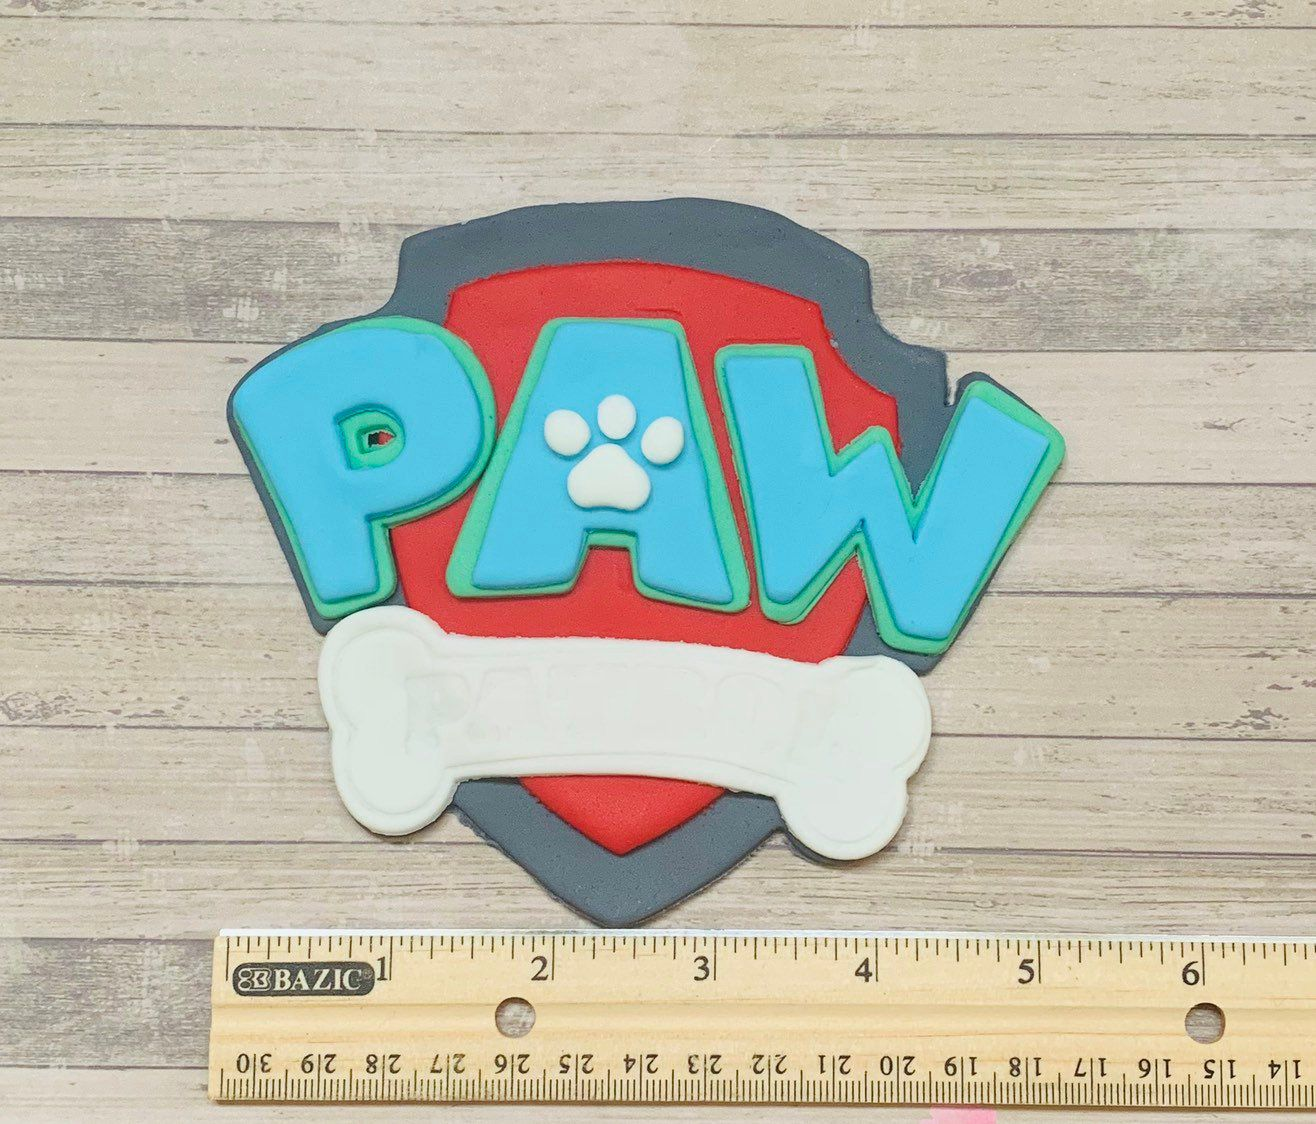 Paw Patrol Badge Fondant Cake Topper, Paw Patrol Cake Topper, Paw Patrol Fondant, Fondant Paw Patrol, Paw Patrol Topper, Paw Patrol, Party - Paw patrol cake toppers, Paw patrol cake, Paw patrol badge, Cake decorating company, Unique cakes designs, Fondant cake topper - Paw Patrol Badge Fondant Cake Topper Perfect to place on top of an ordinary frosted cupcake to make them look super glamorous and expensive!  I can make a custom assortment of your favorite comic book heroes not shown here, just convo me  Please allow 710 business days for processing as sugar edibles  must dry thoroughly before being ready to package and ship  Do not refrigerate or freeze (moisture buildup) and do not store in direct sunlight to prevent fading of the edibles